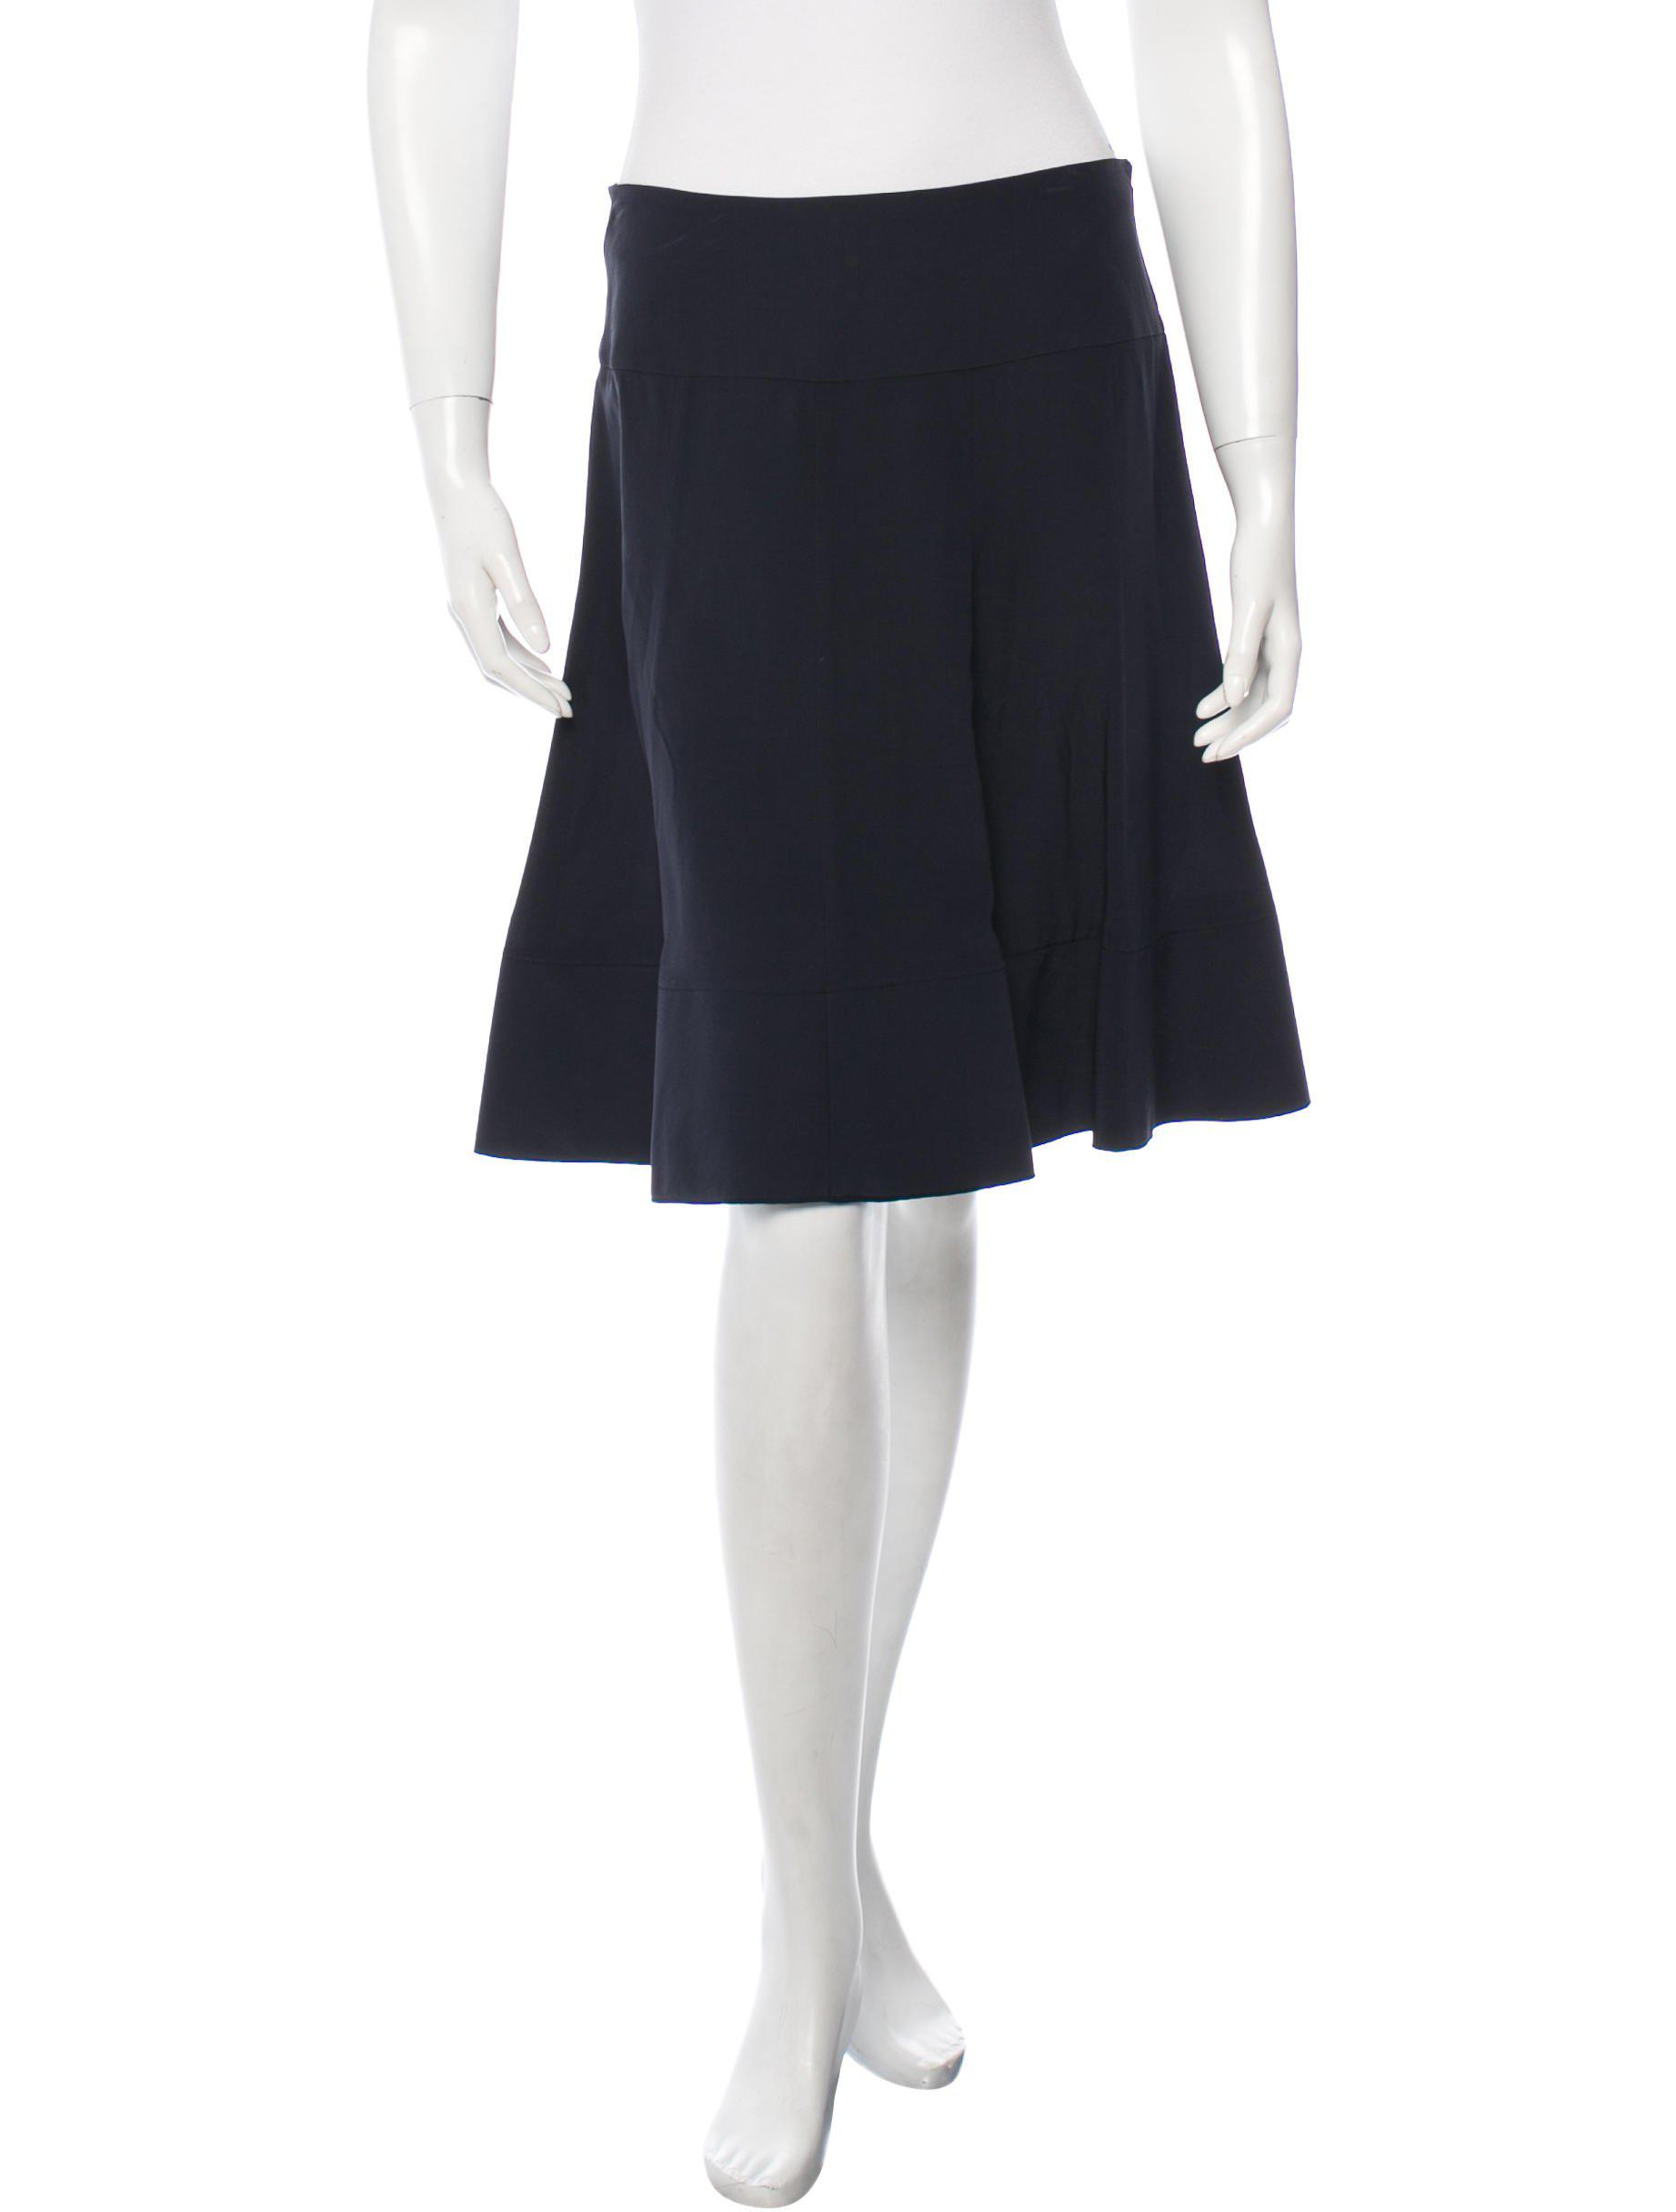 Buy Cheap Footlocker Finishline Dorothee Schumacher A-Line Knee-Length Skirt w/ Tags Free Shipping Supply Cheapest Sale Fashion Style Outlet 100% Original QJ4ZK2